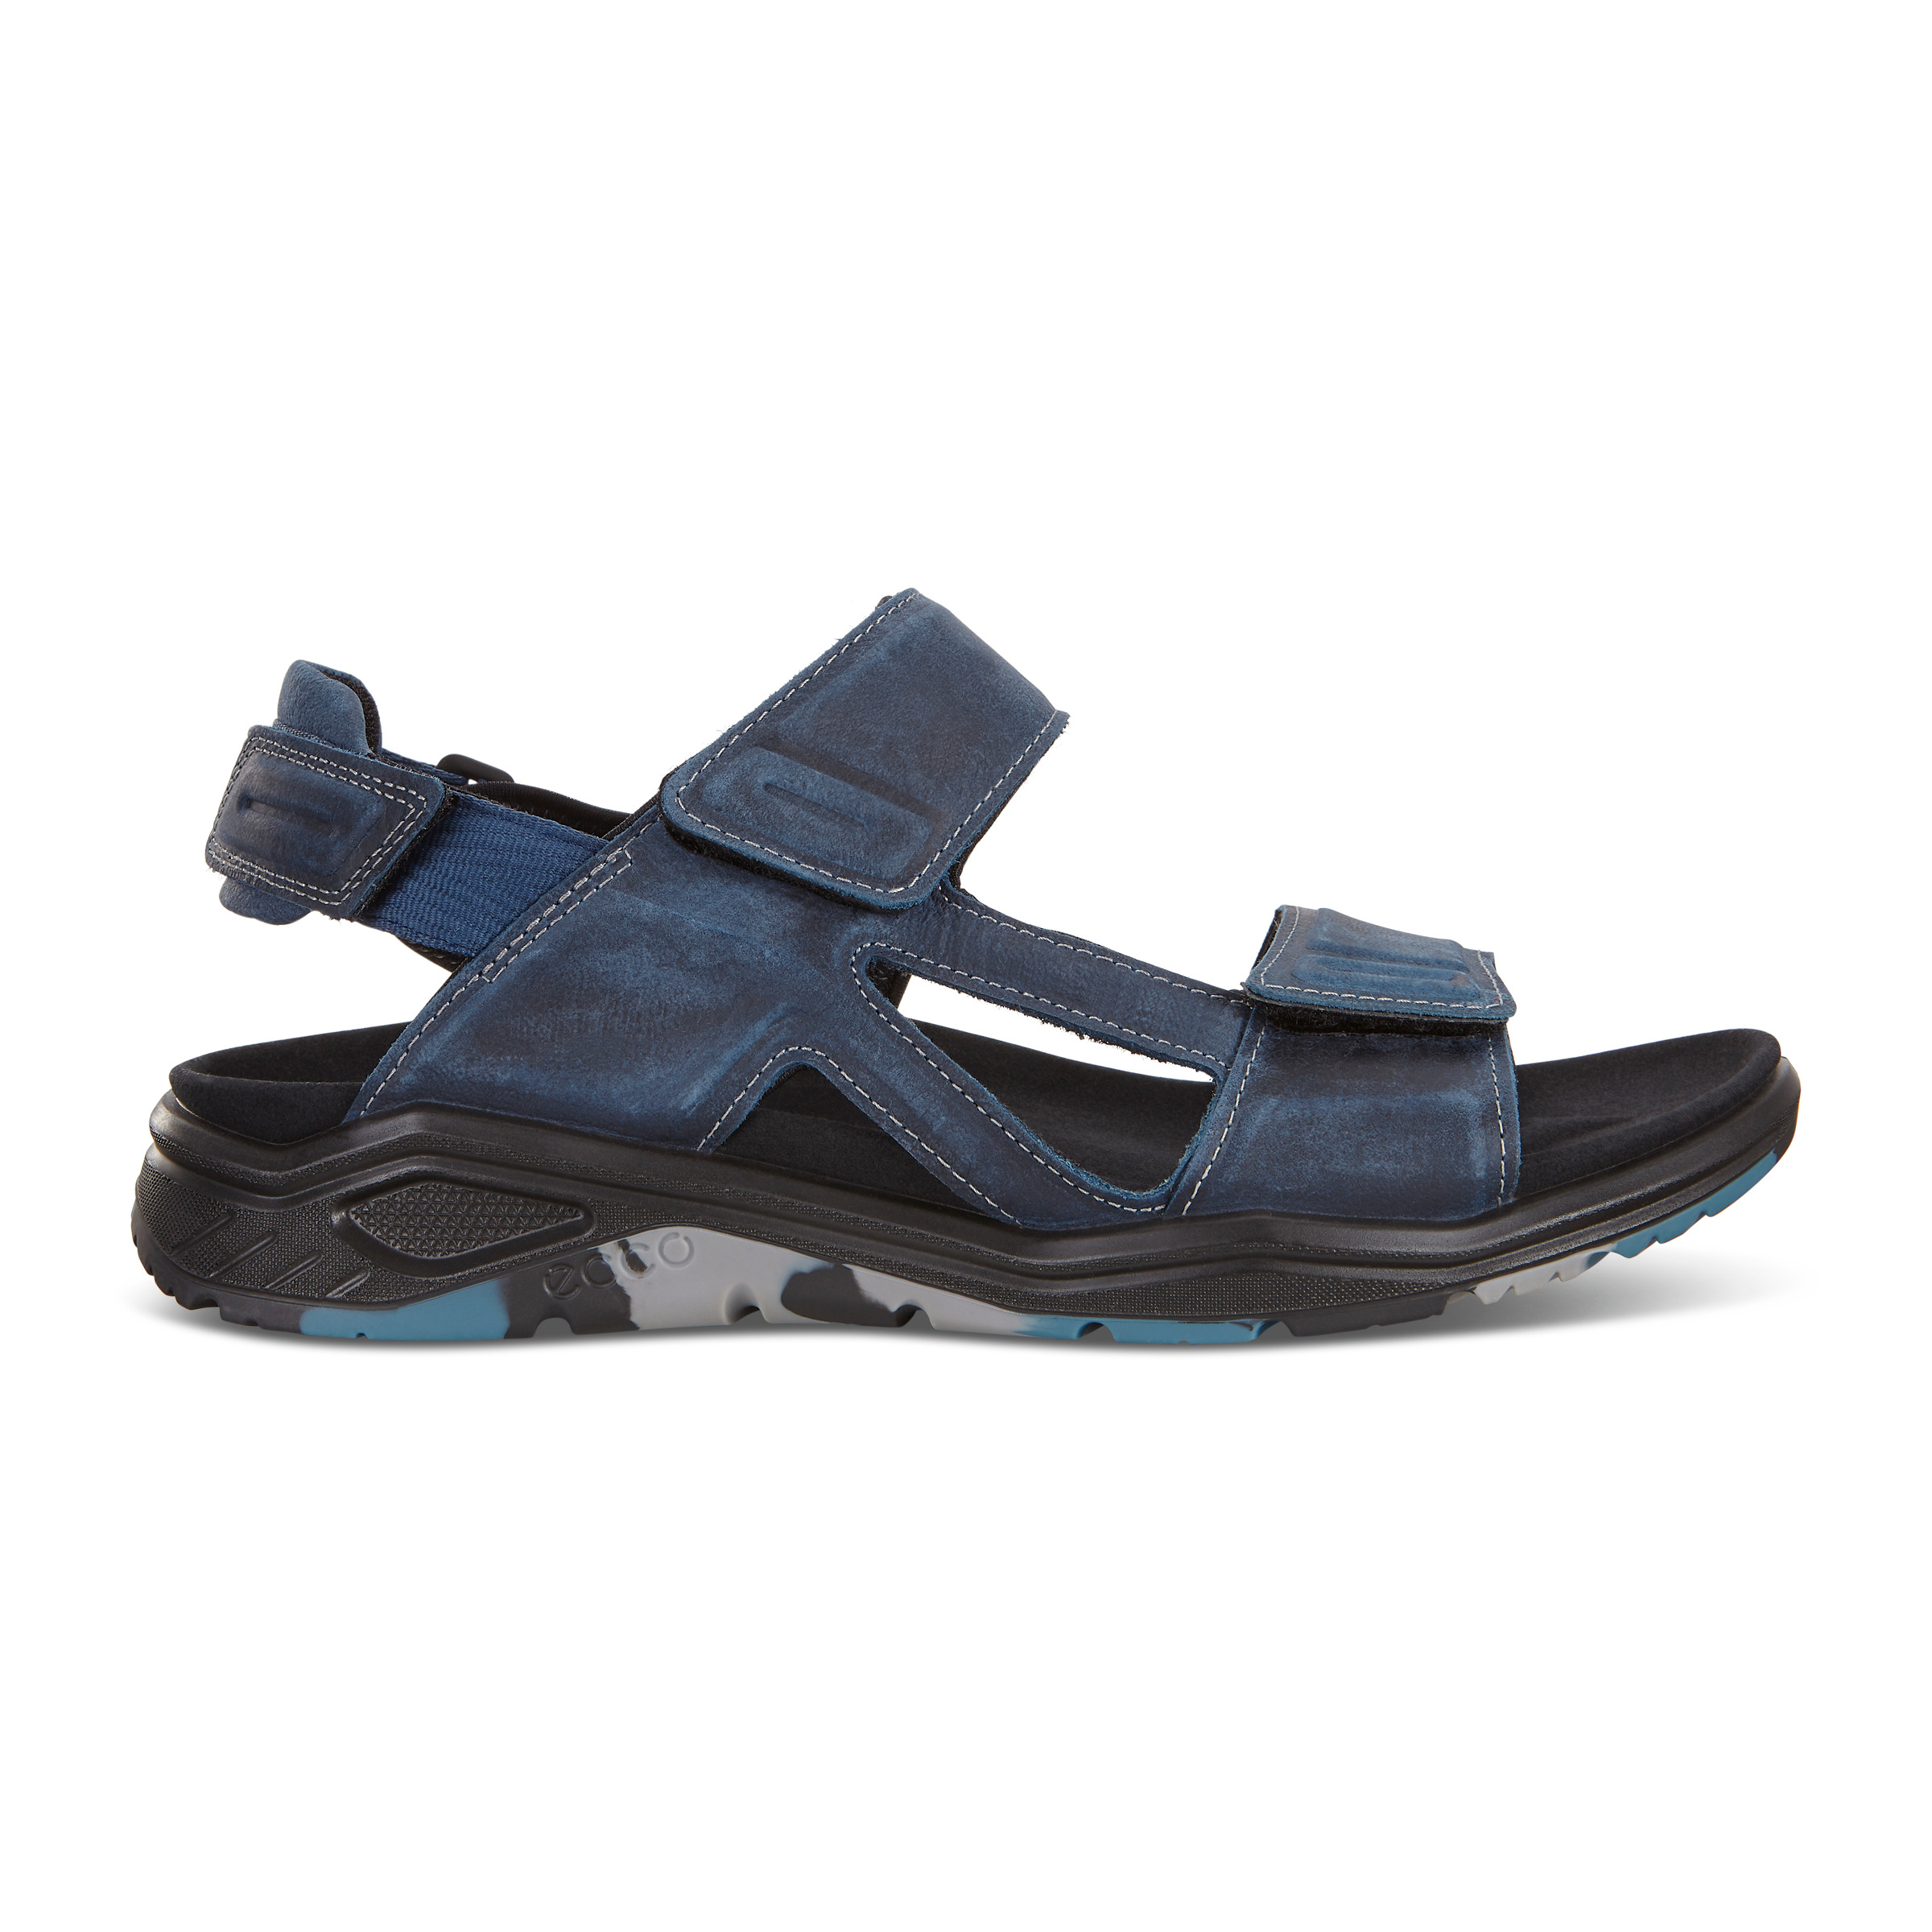 UPC 809704880600 product image for ECCO X-trinsic Flat Sandal Size 5-5.5 True Navy | upcitemdb.com